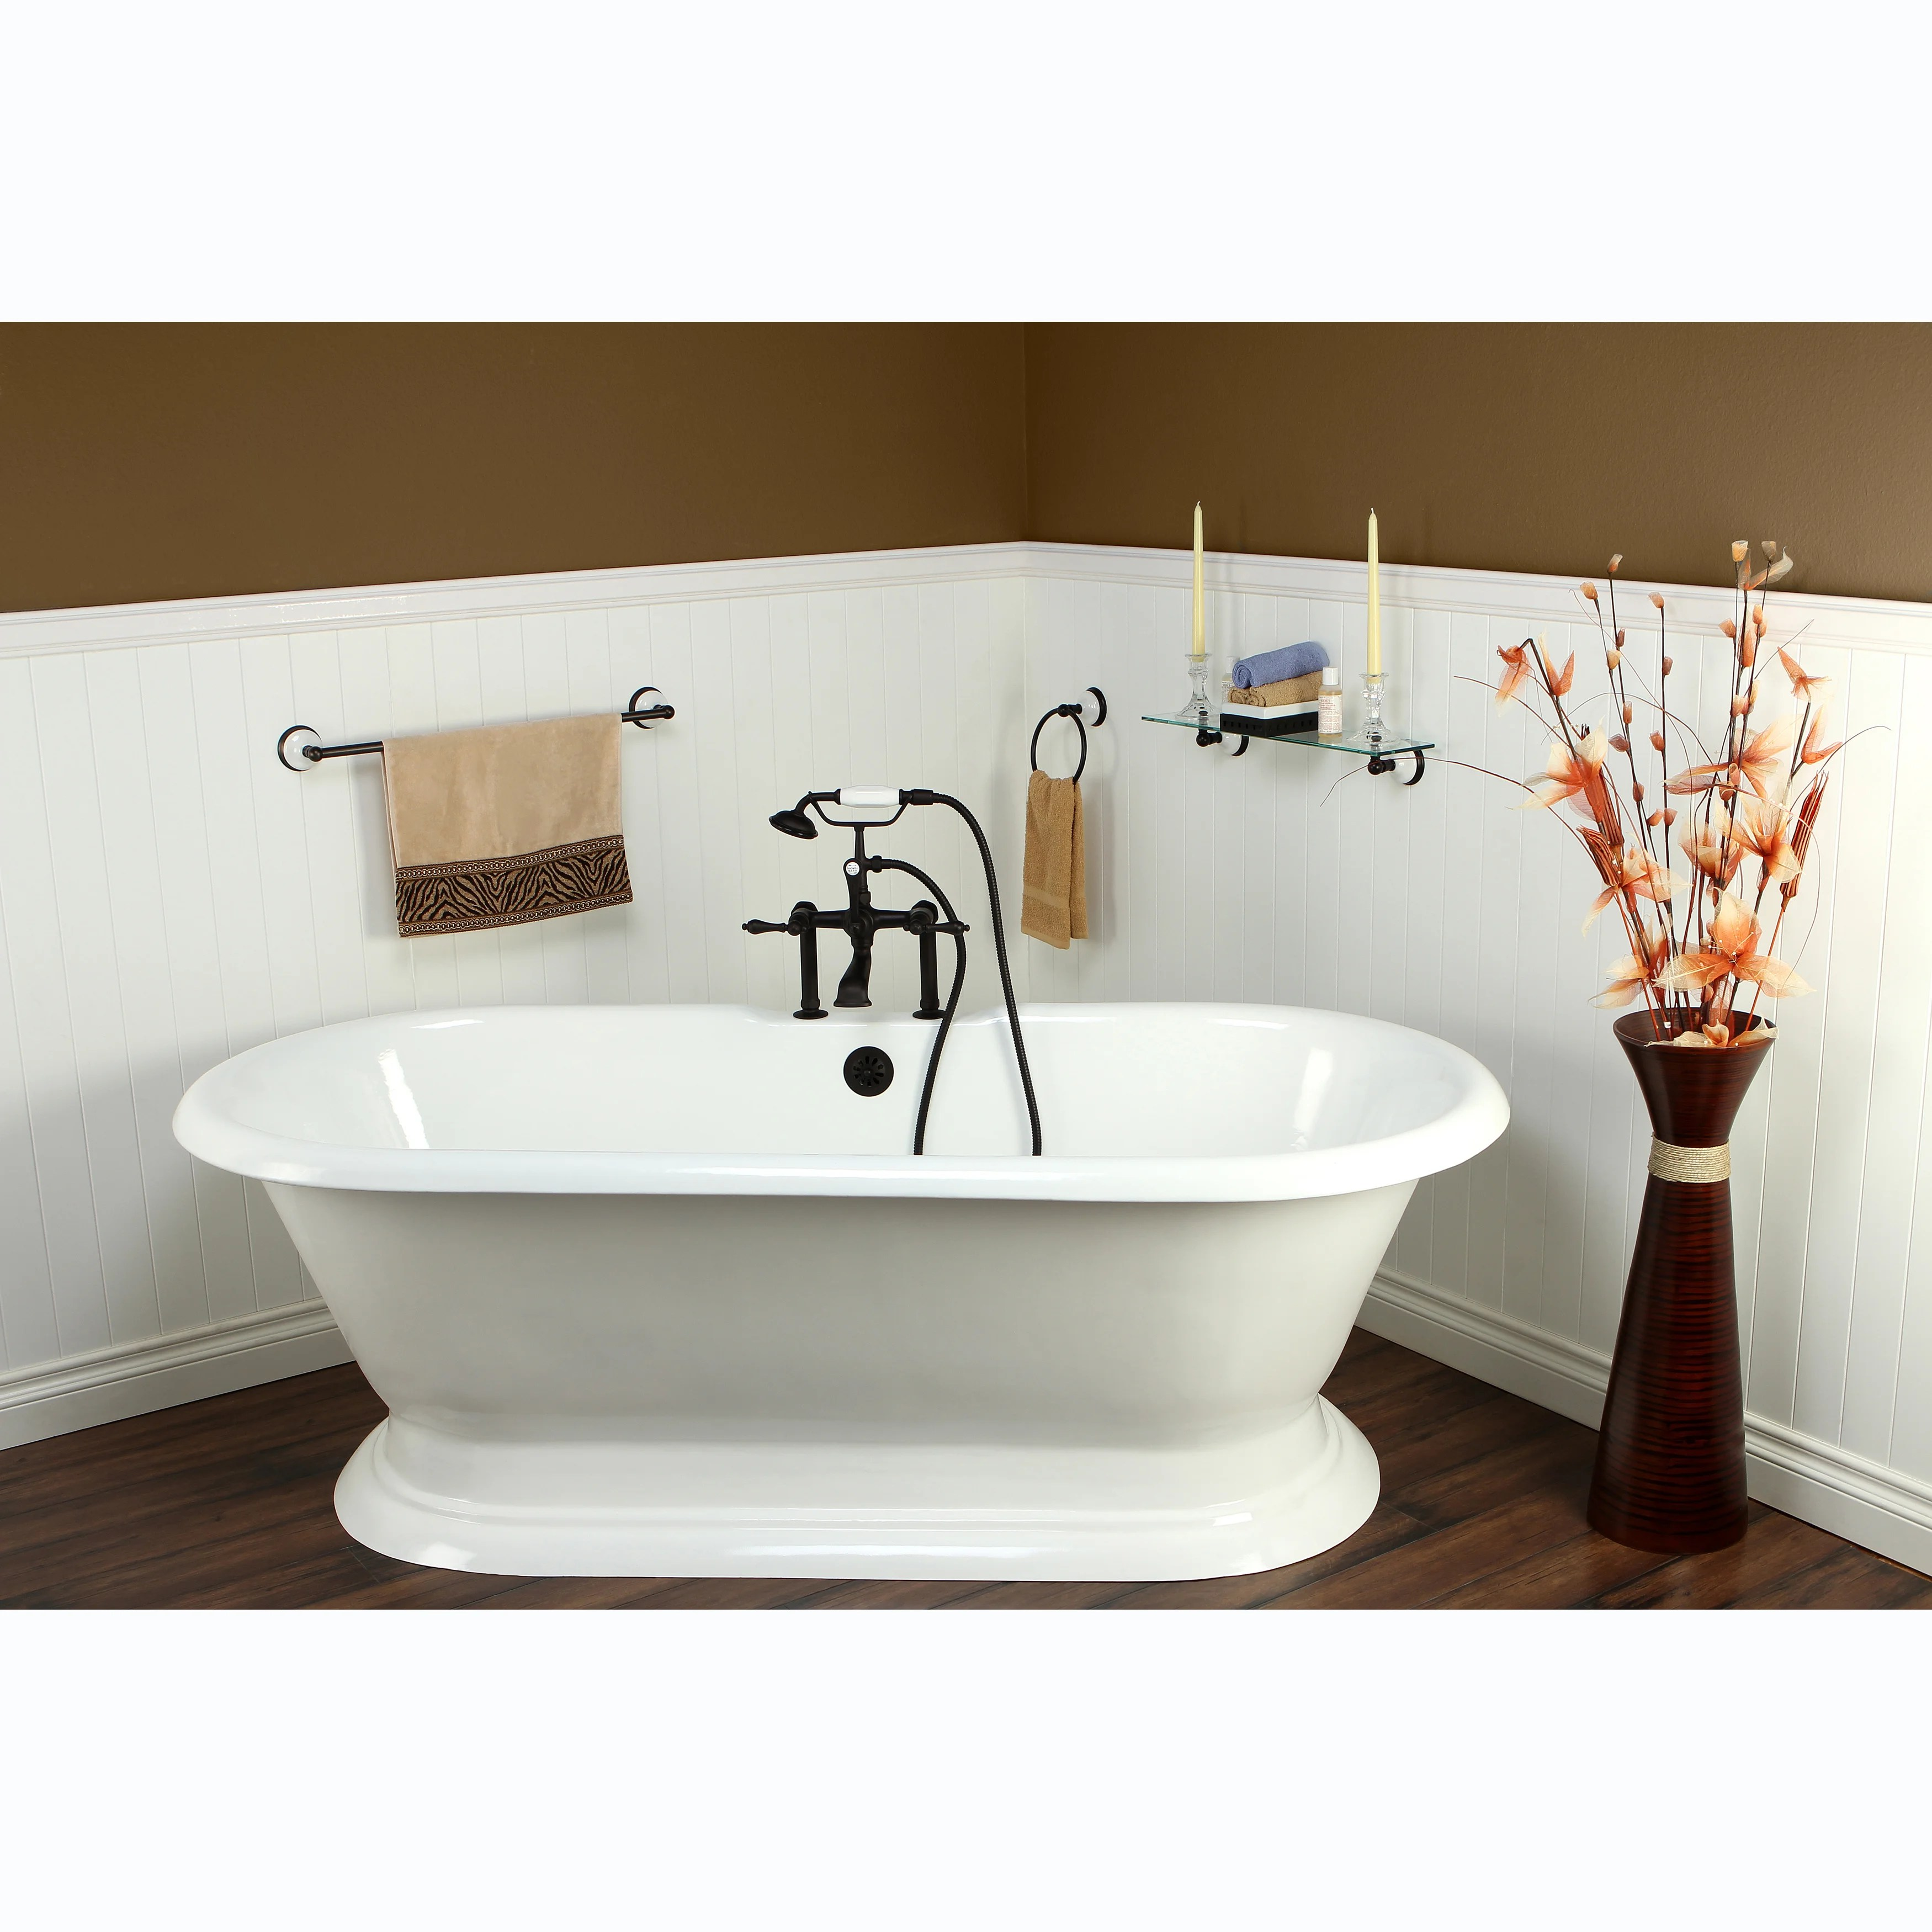 Shop Double Ended Cast Iron 72 Inch Pedestal Bathtub With 7 Inch Drillings Overstock 7726356